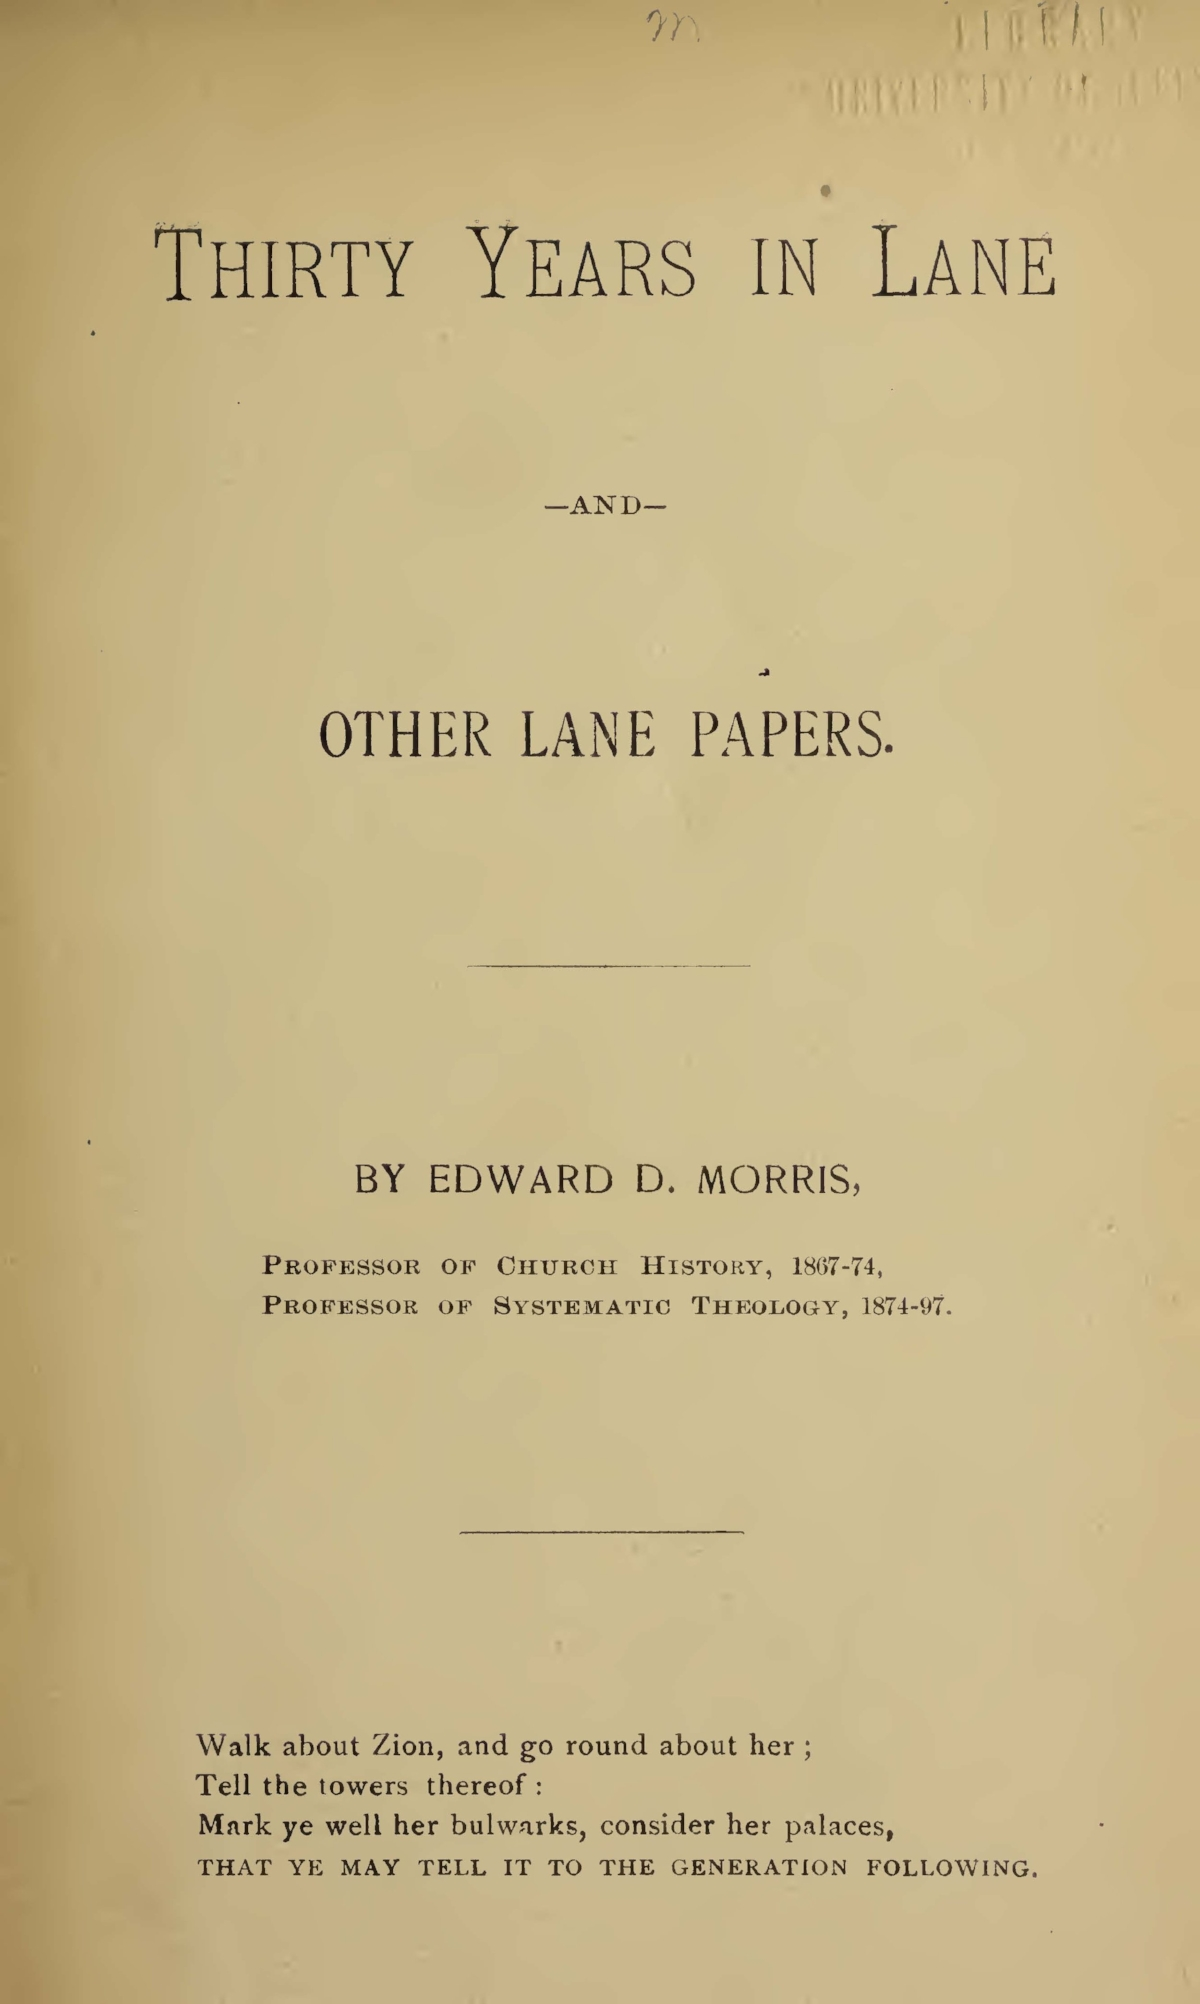 Morris, Edward Dafydd, Thirty Years in Lane, and Other Lane Papers Title Page.jpg